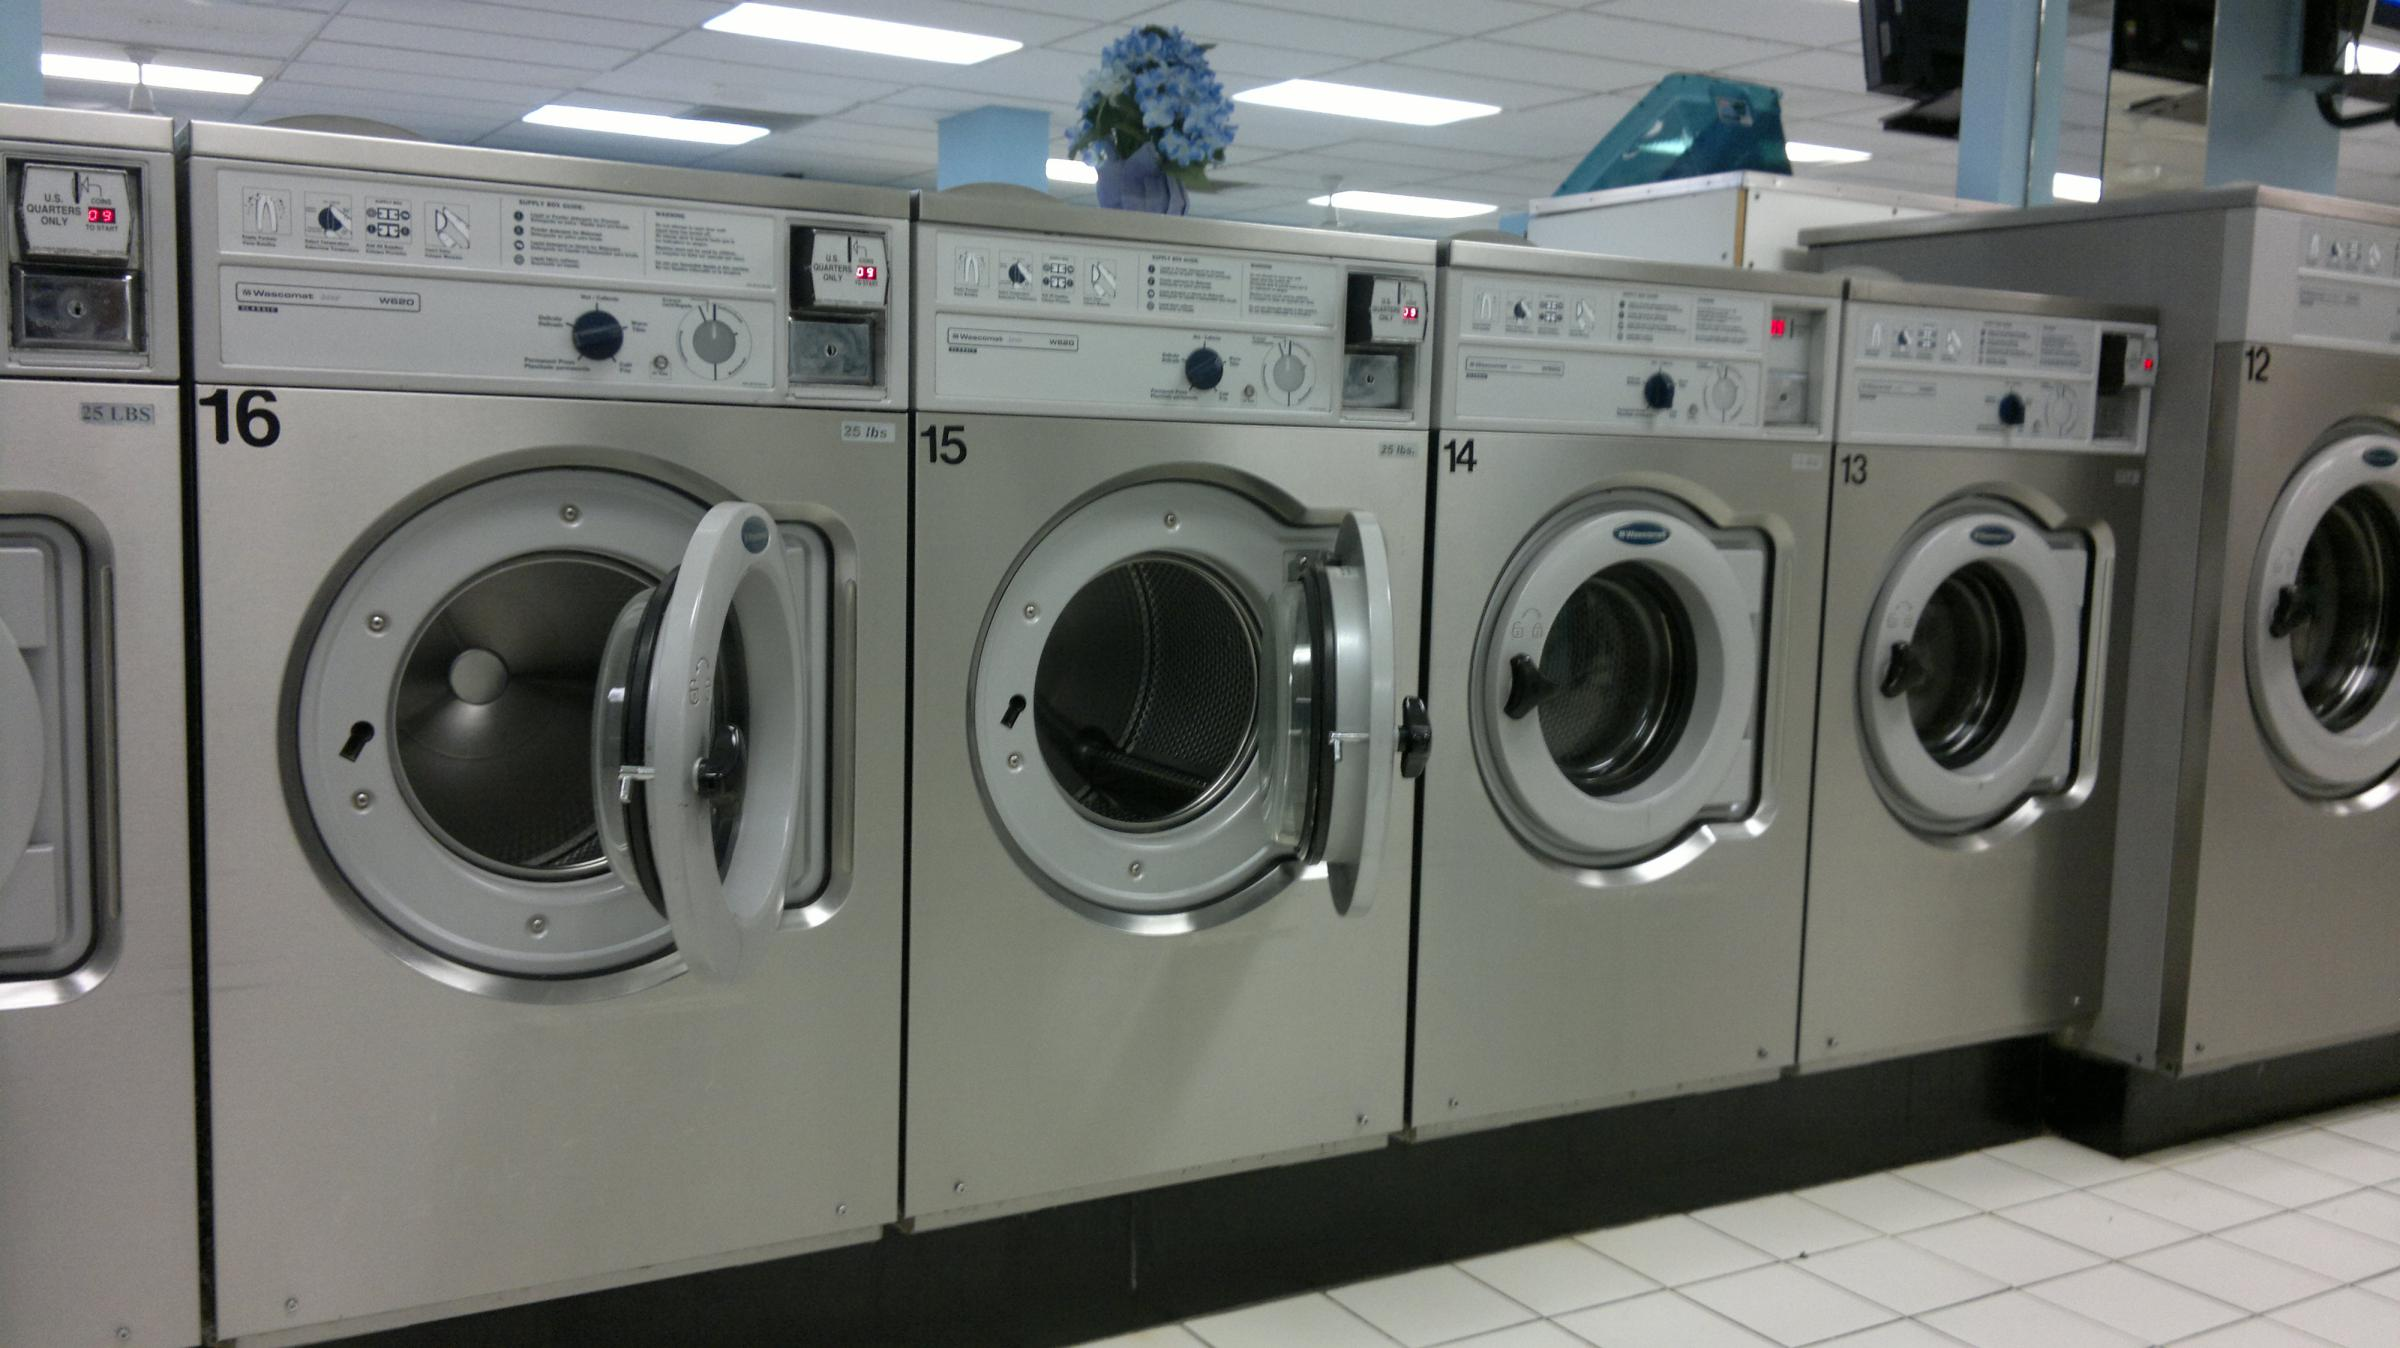 Lessons From The Laundrymat